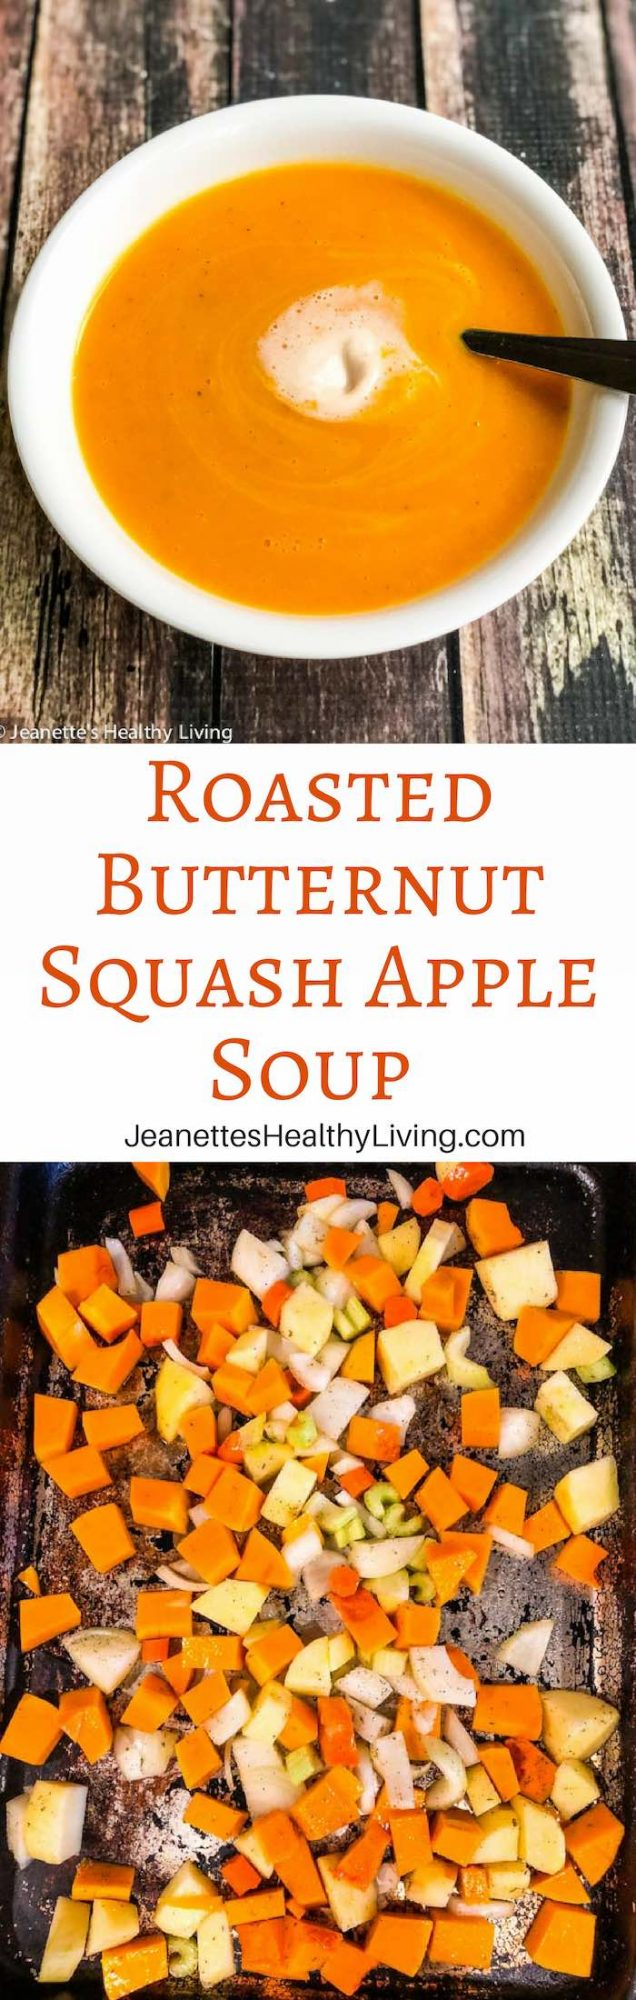 Roasted Butternut Squash Apple Soup - served with maple syrup coconut cream - vegan and vegetarian friendly